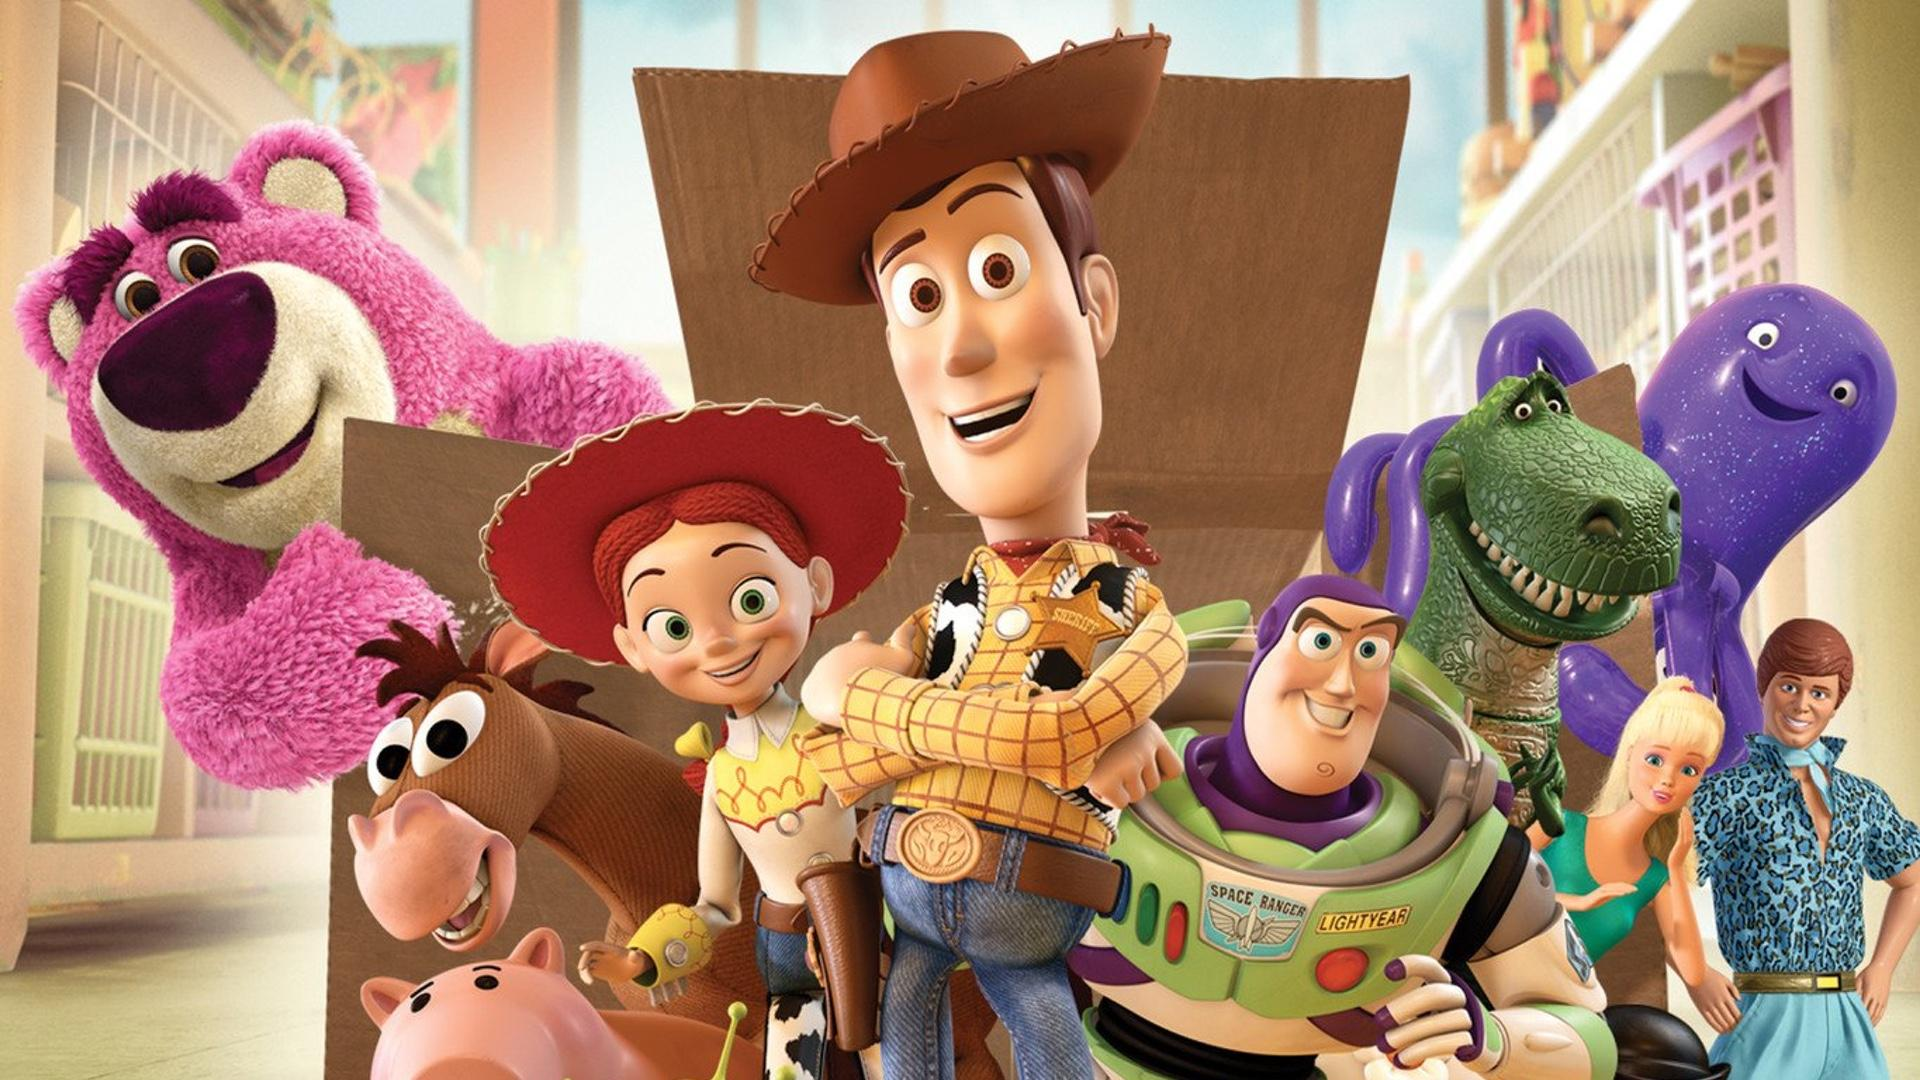 Toy Story 4 3D Wallpapers - Wallpaper Cave